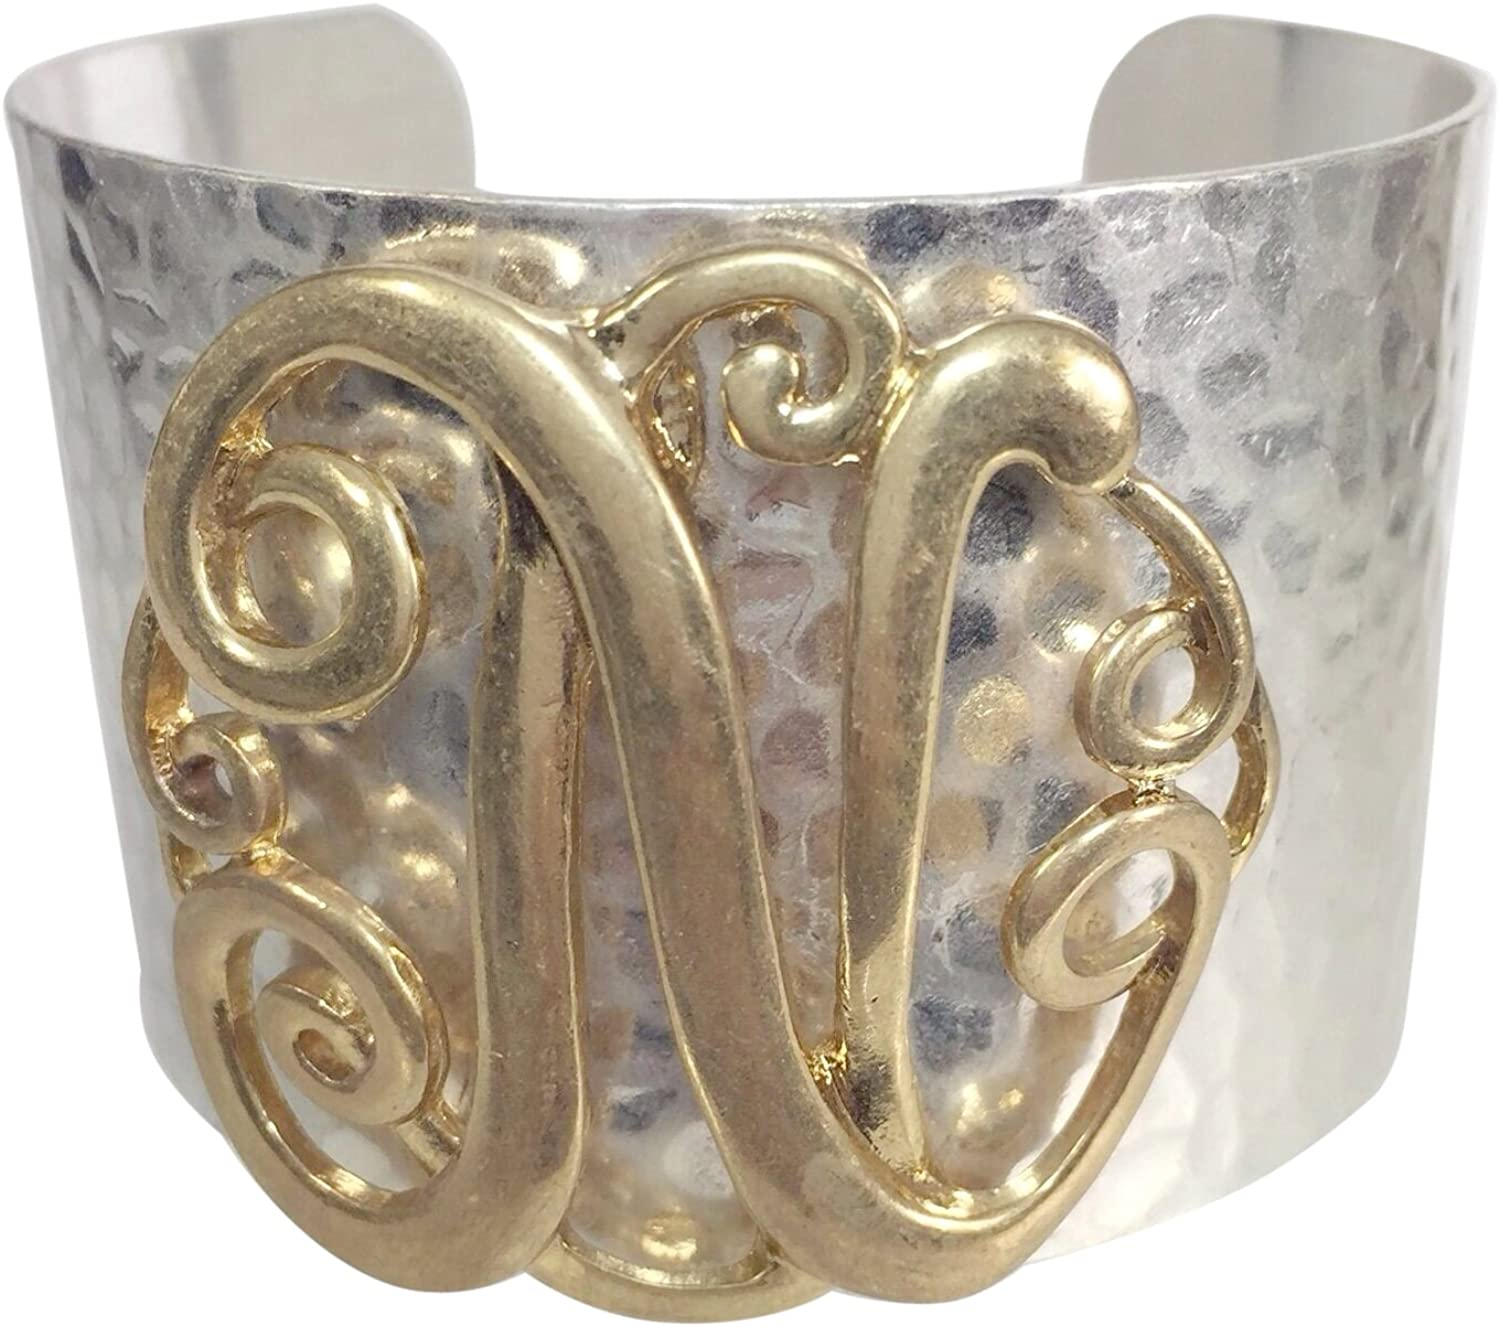 Gypsy Jewels Wide 2 Tone Hammered Boutique Look Monogram Initial Cuff Bracelet